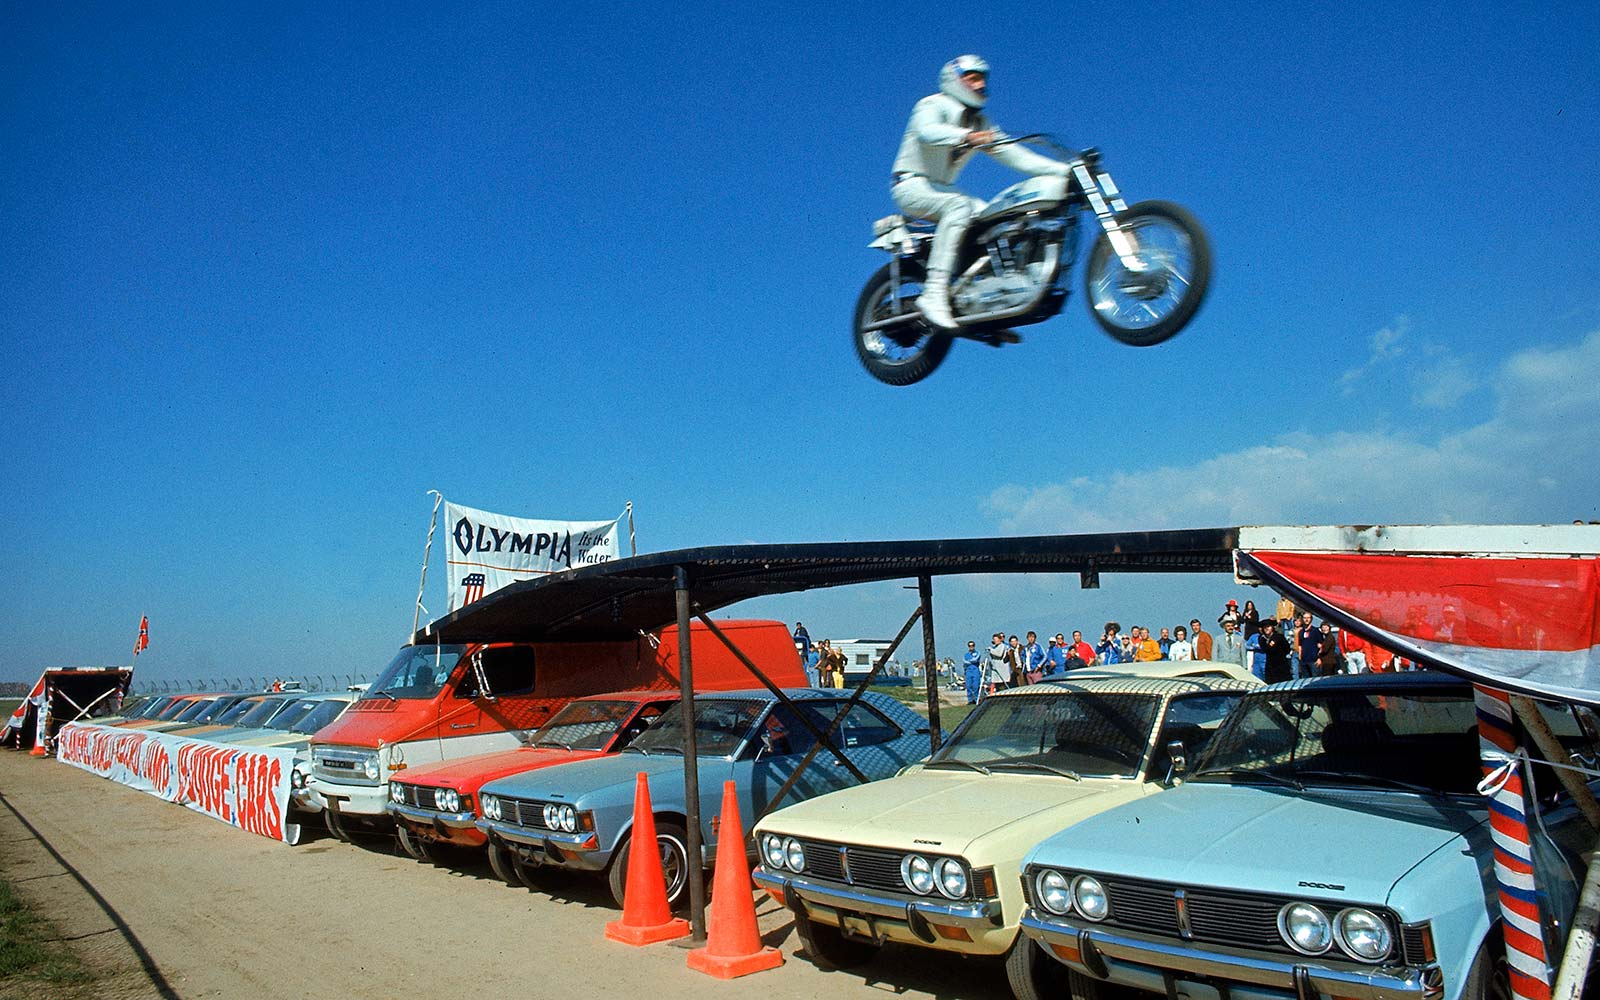 American stuntcyclist and daredevil Evel Knievel soars over 17 cars, 1971. Later that year, he broke the car jumping record clearing 19 vehicles